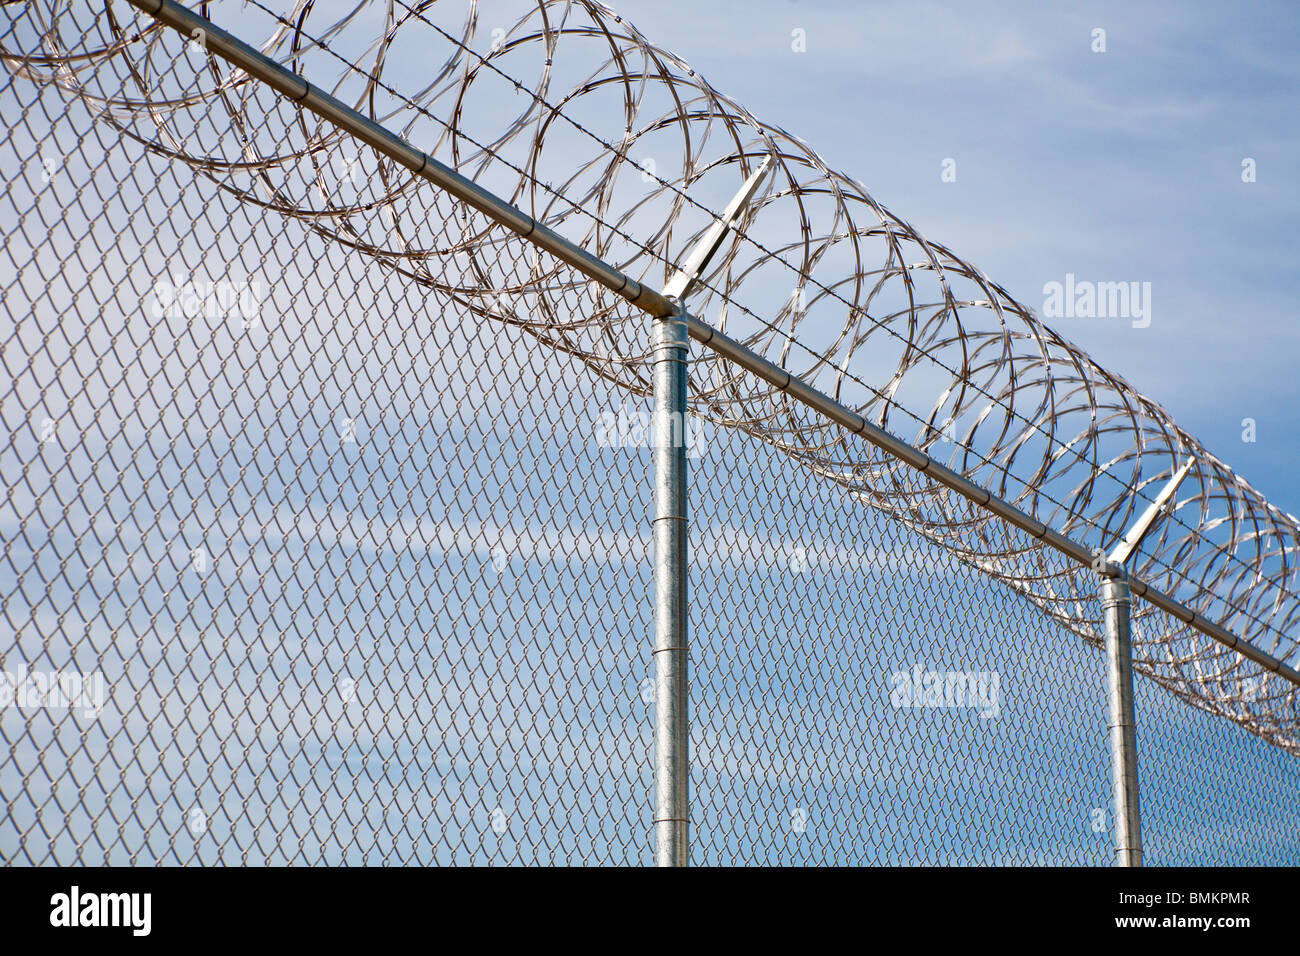 Stainless Steel Fencing Stock Photos & Stainless Steel Fencing Stock ...